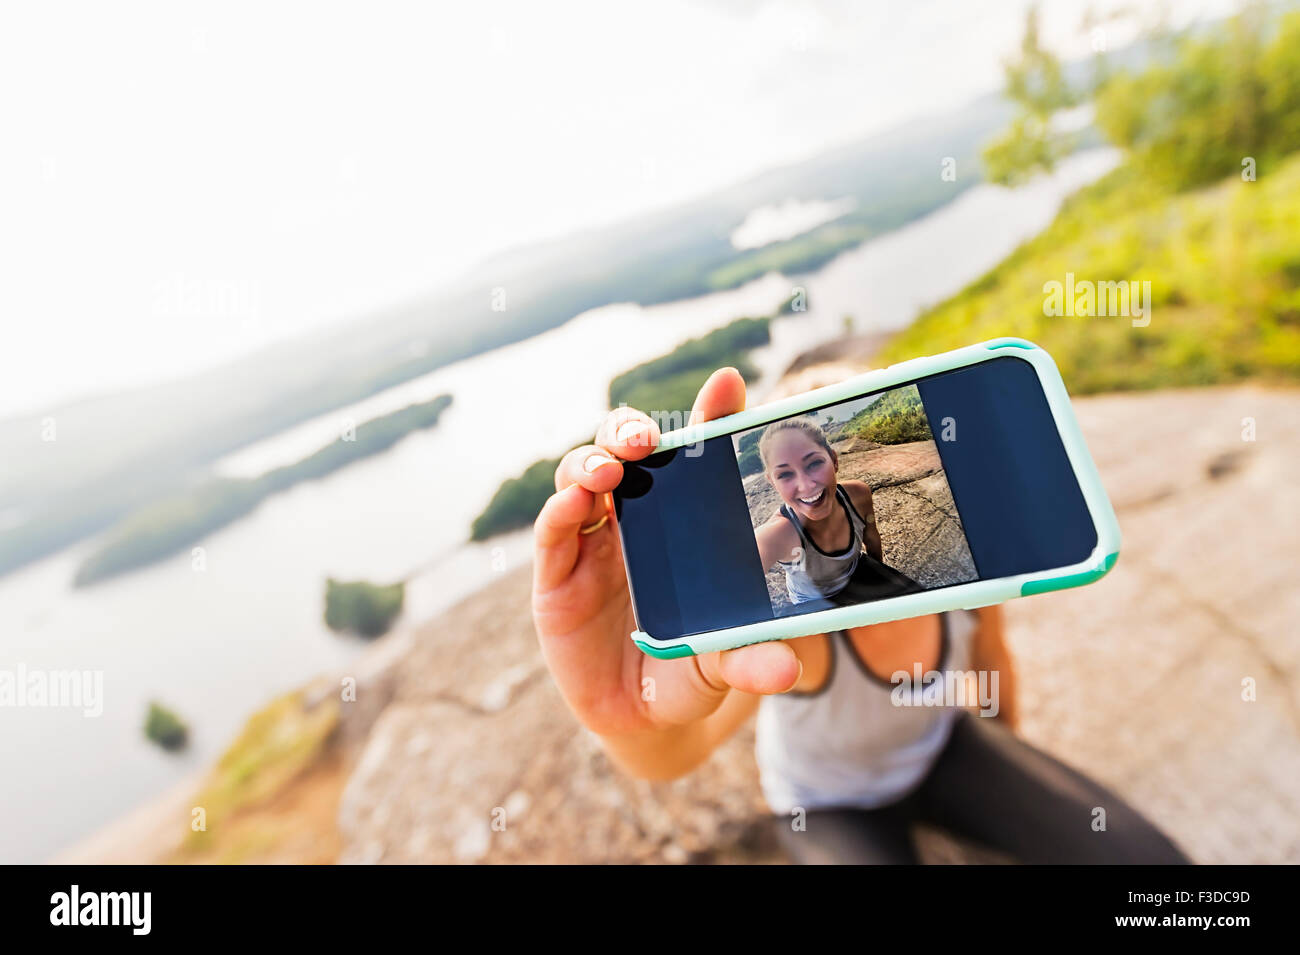 Young woman taking selfie on Smartphone - Stock Image